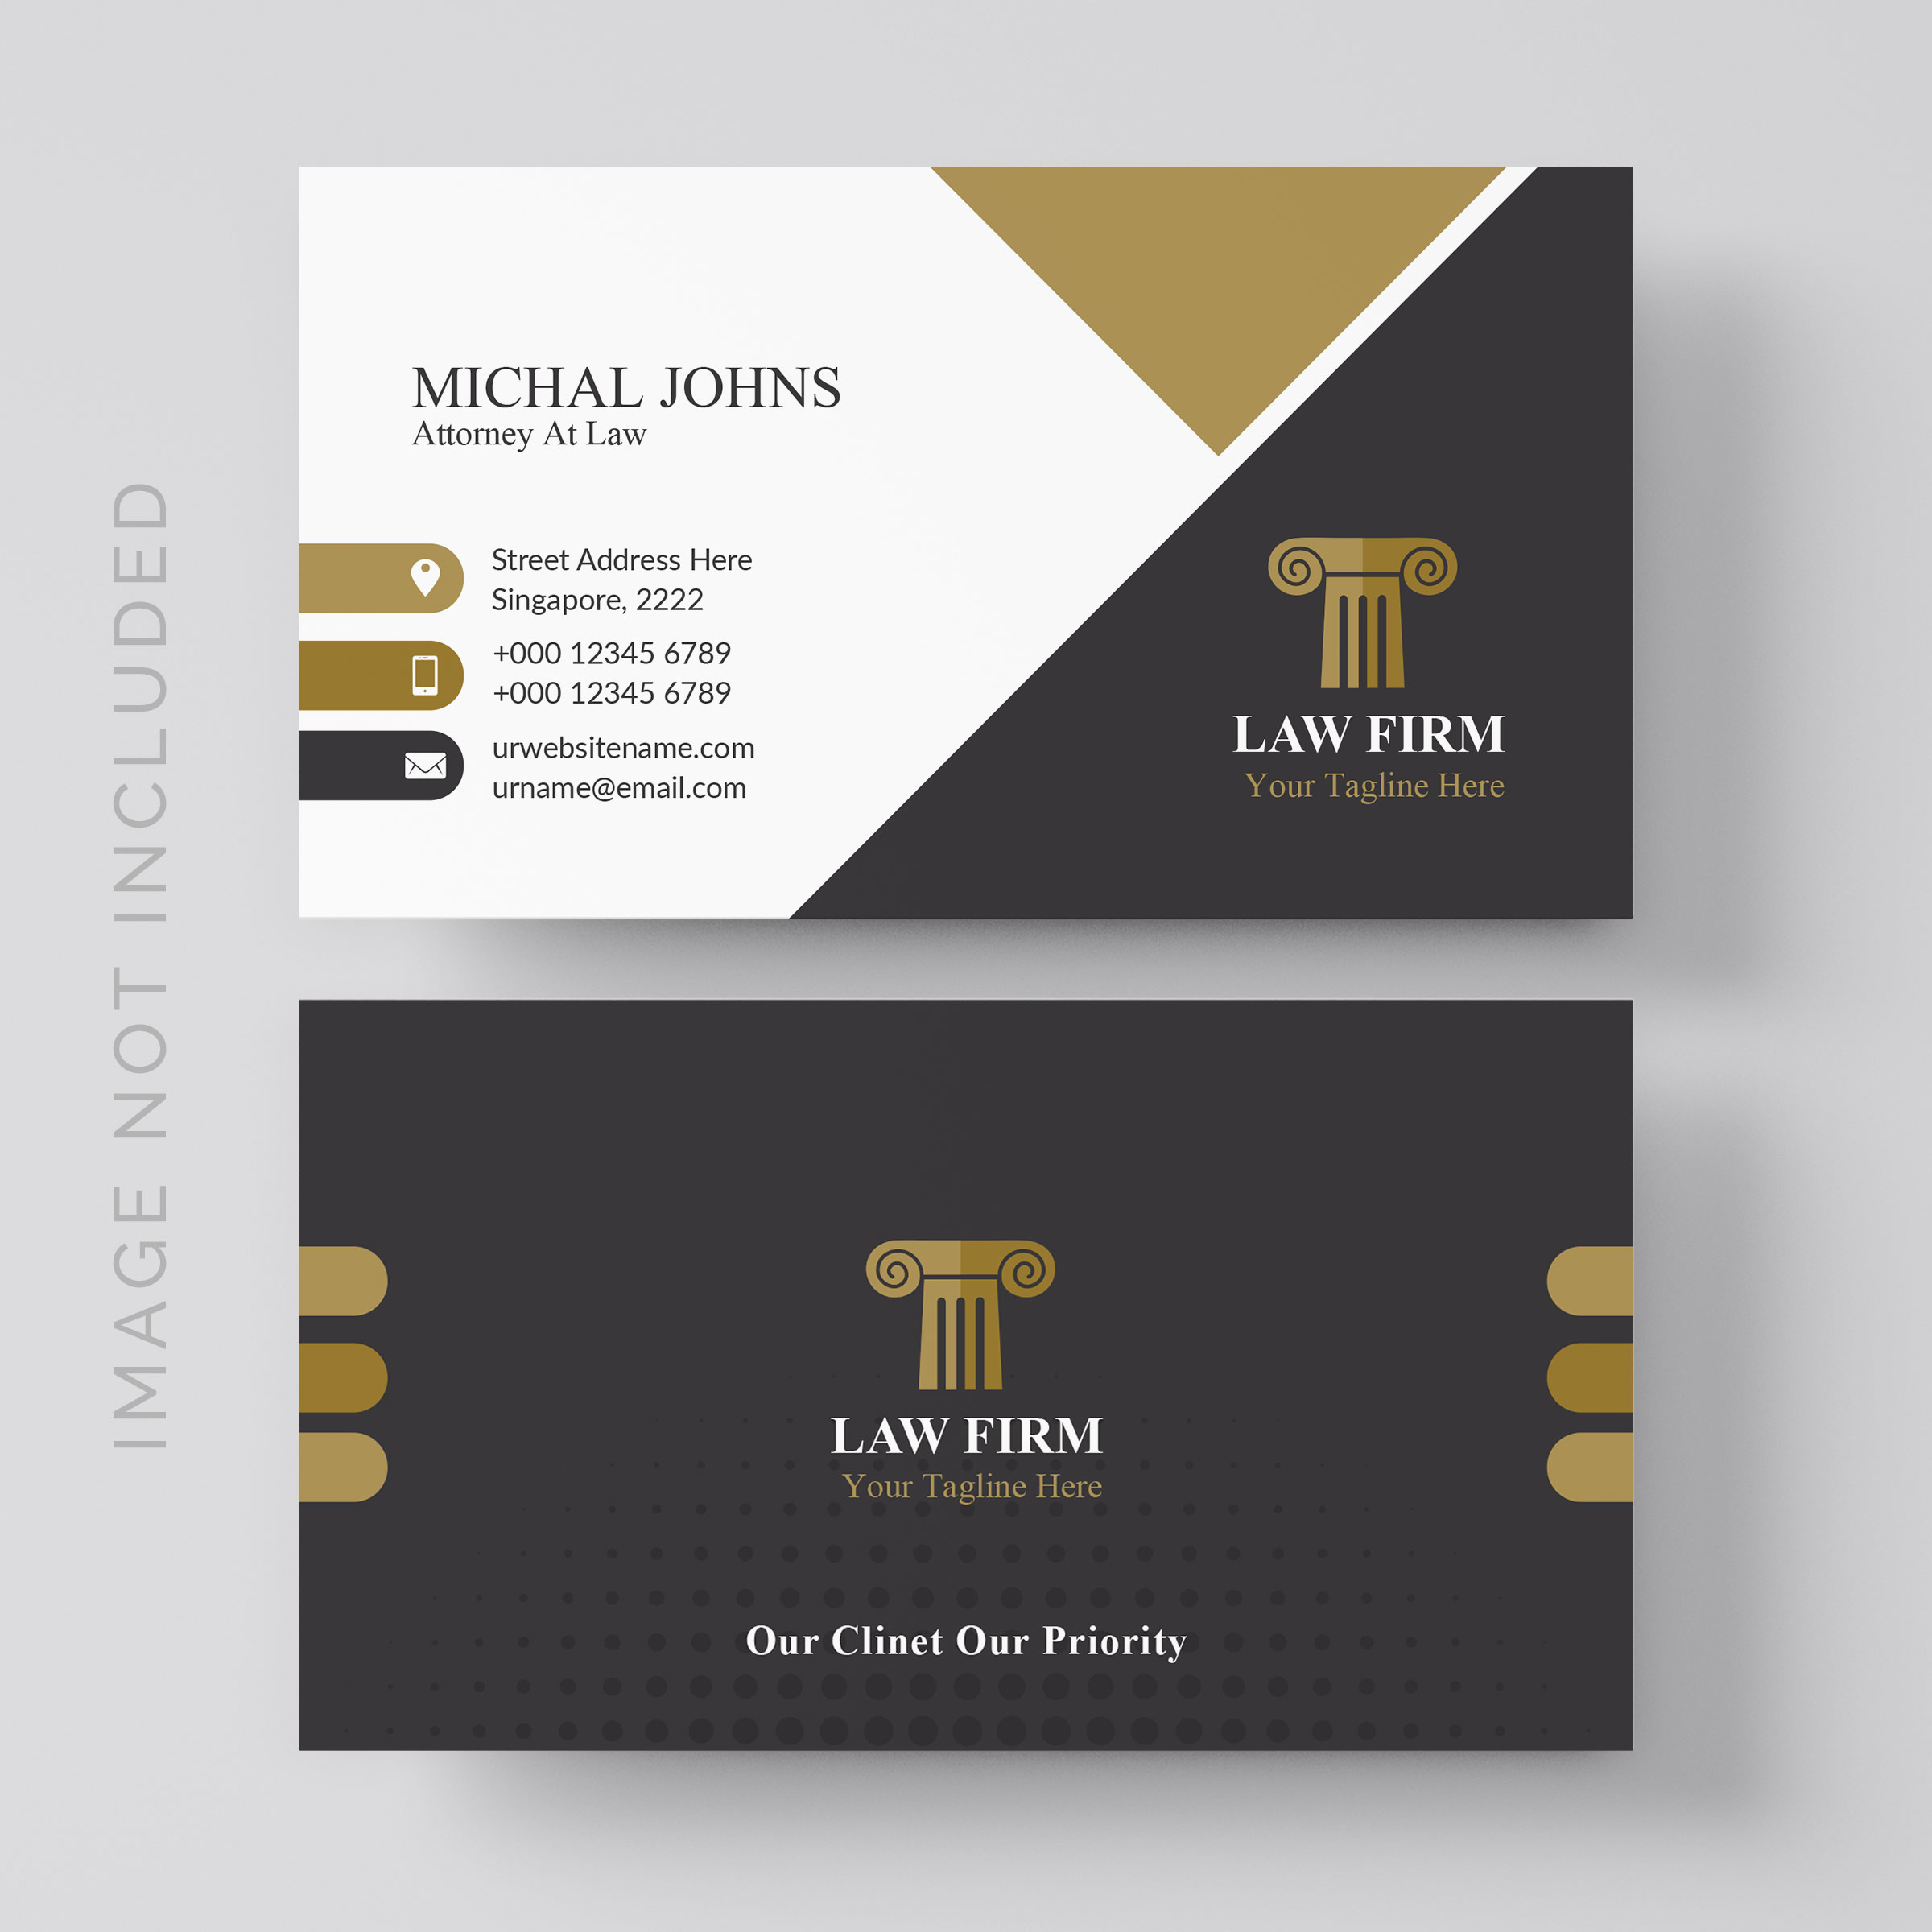 lawyer business card free vector art